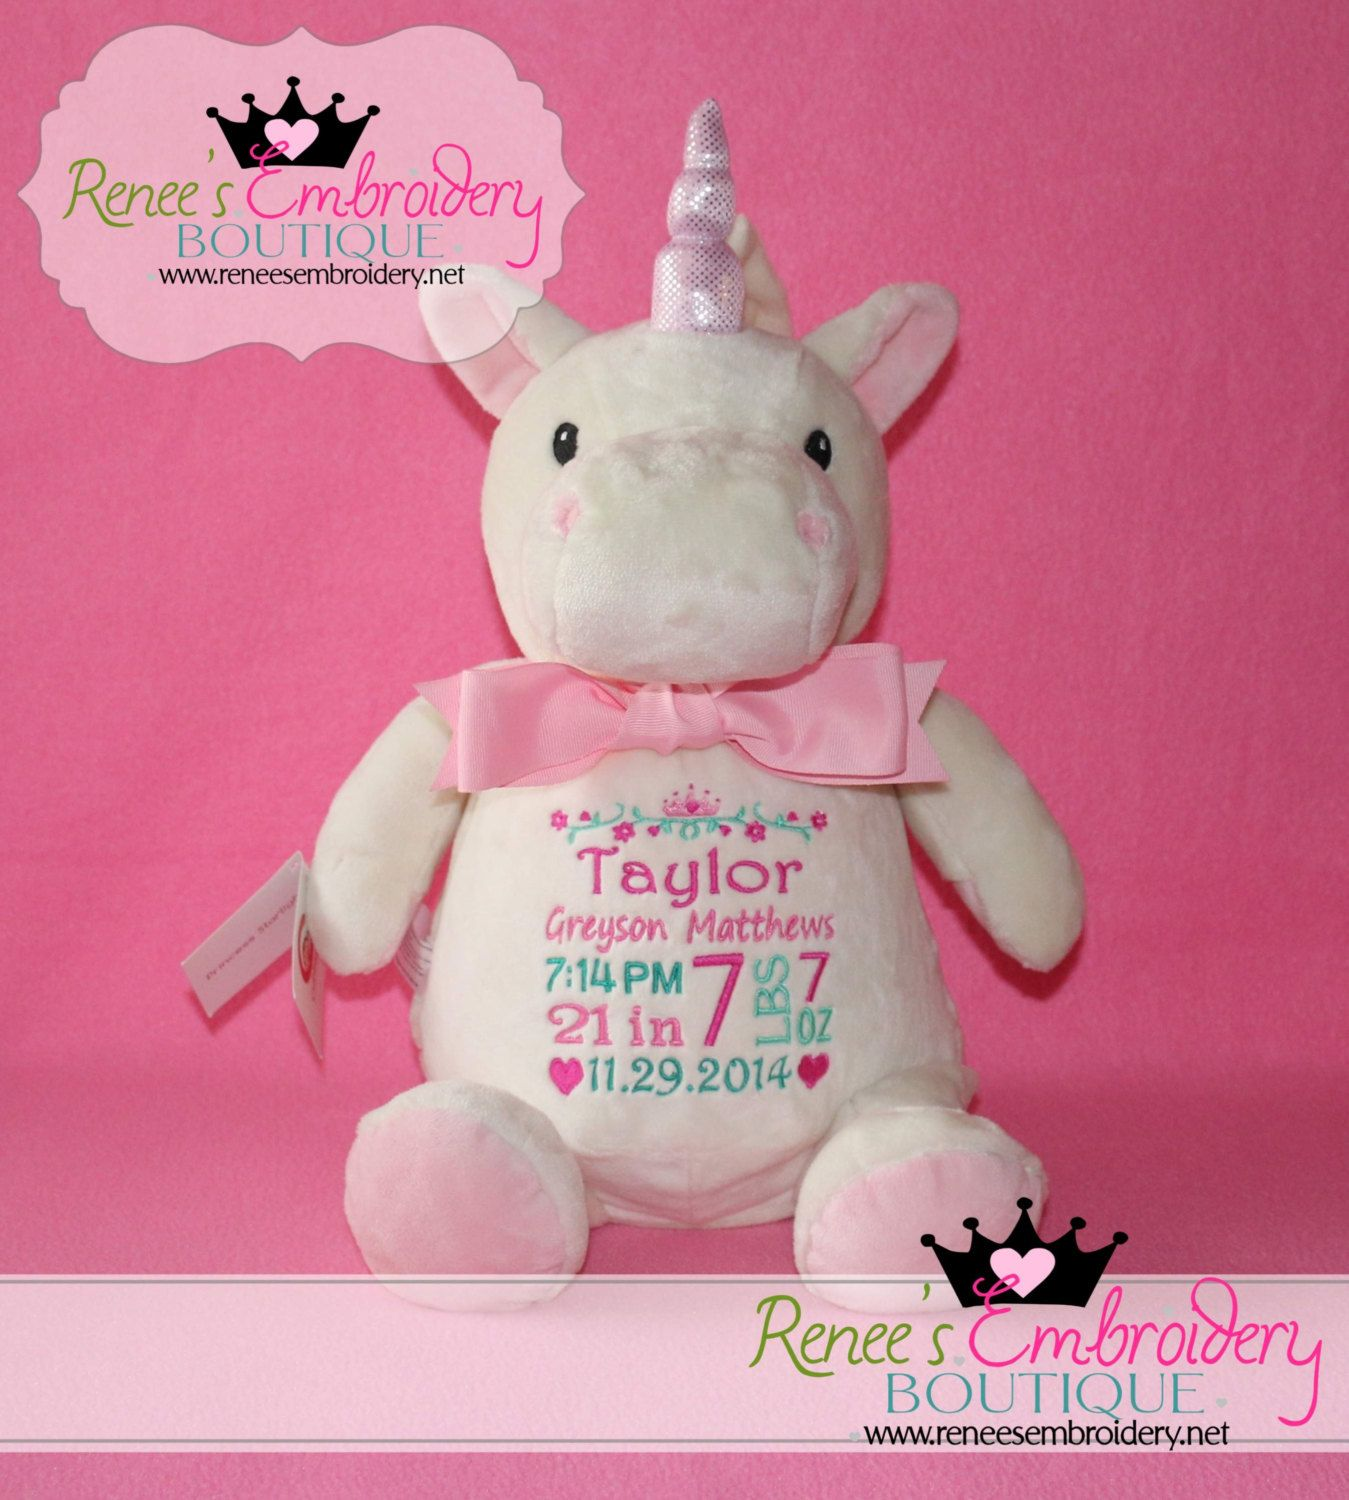 Personalized baby gift cubbies unicorn stuffed animal plush toy personalized baby gift cubbies unicorn stuffed animal plush toy negle Images